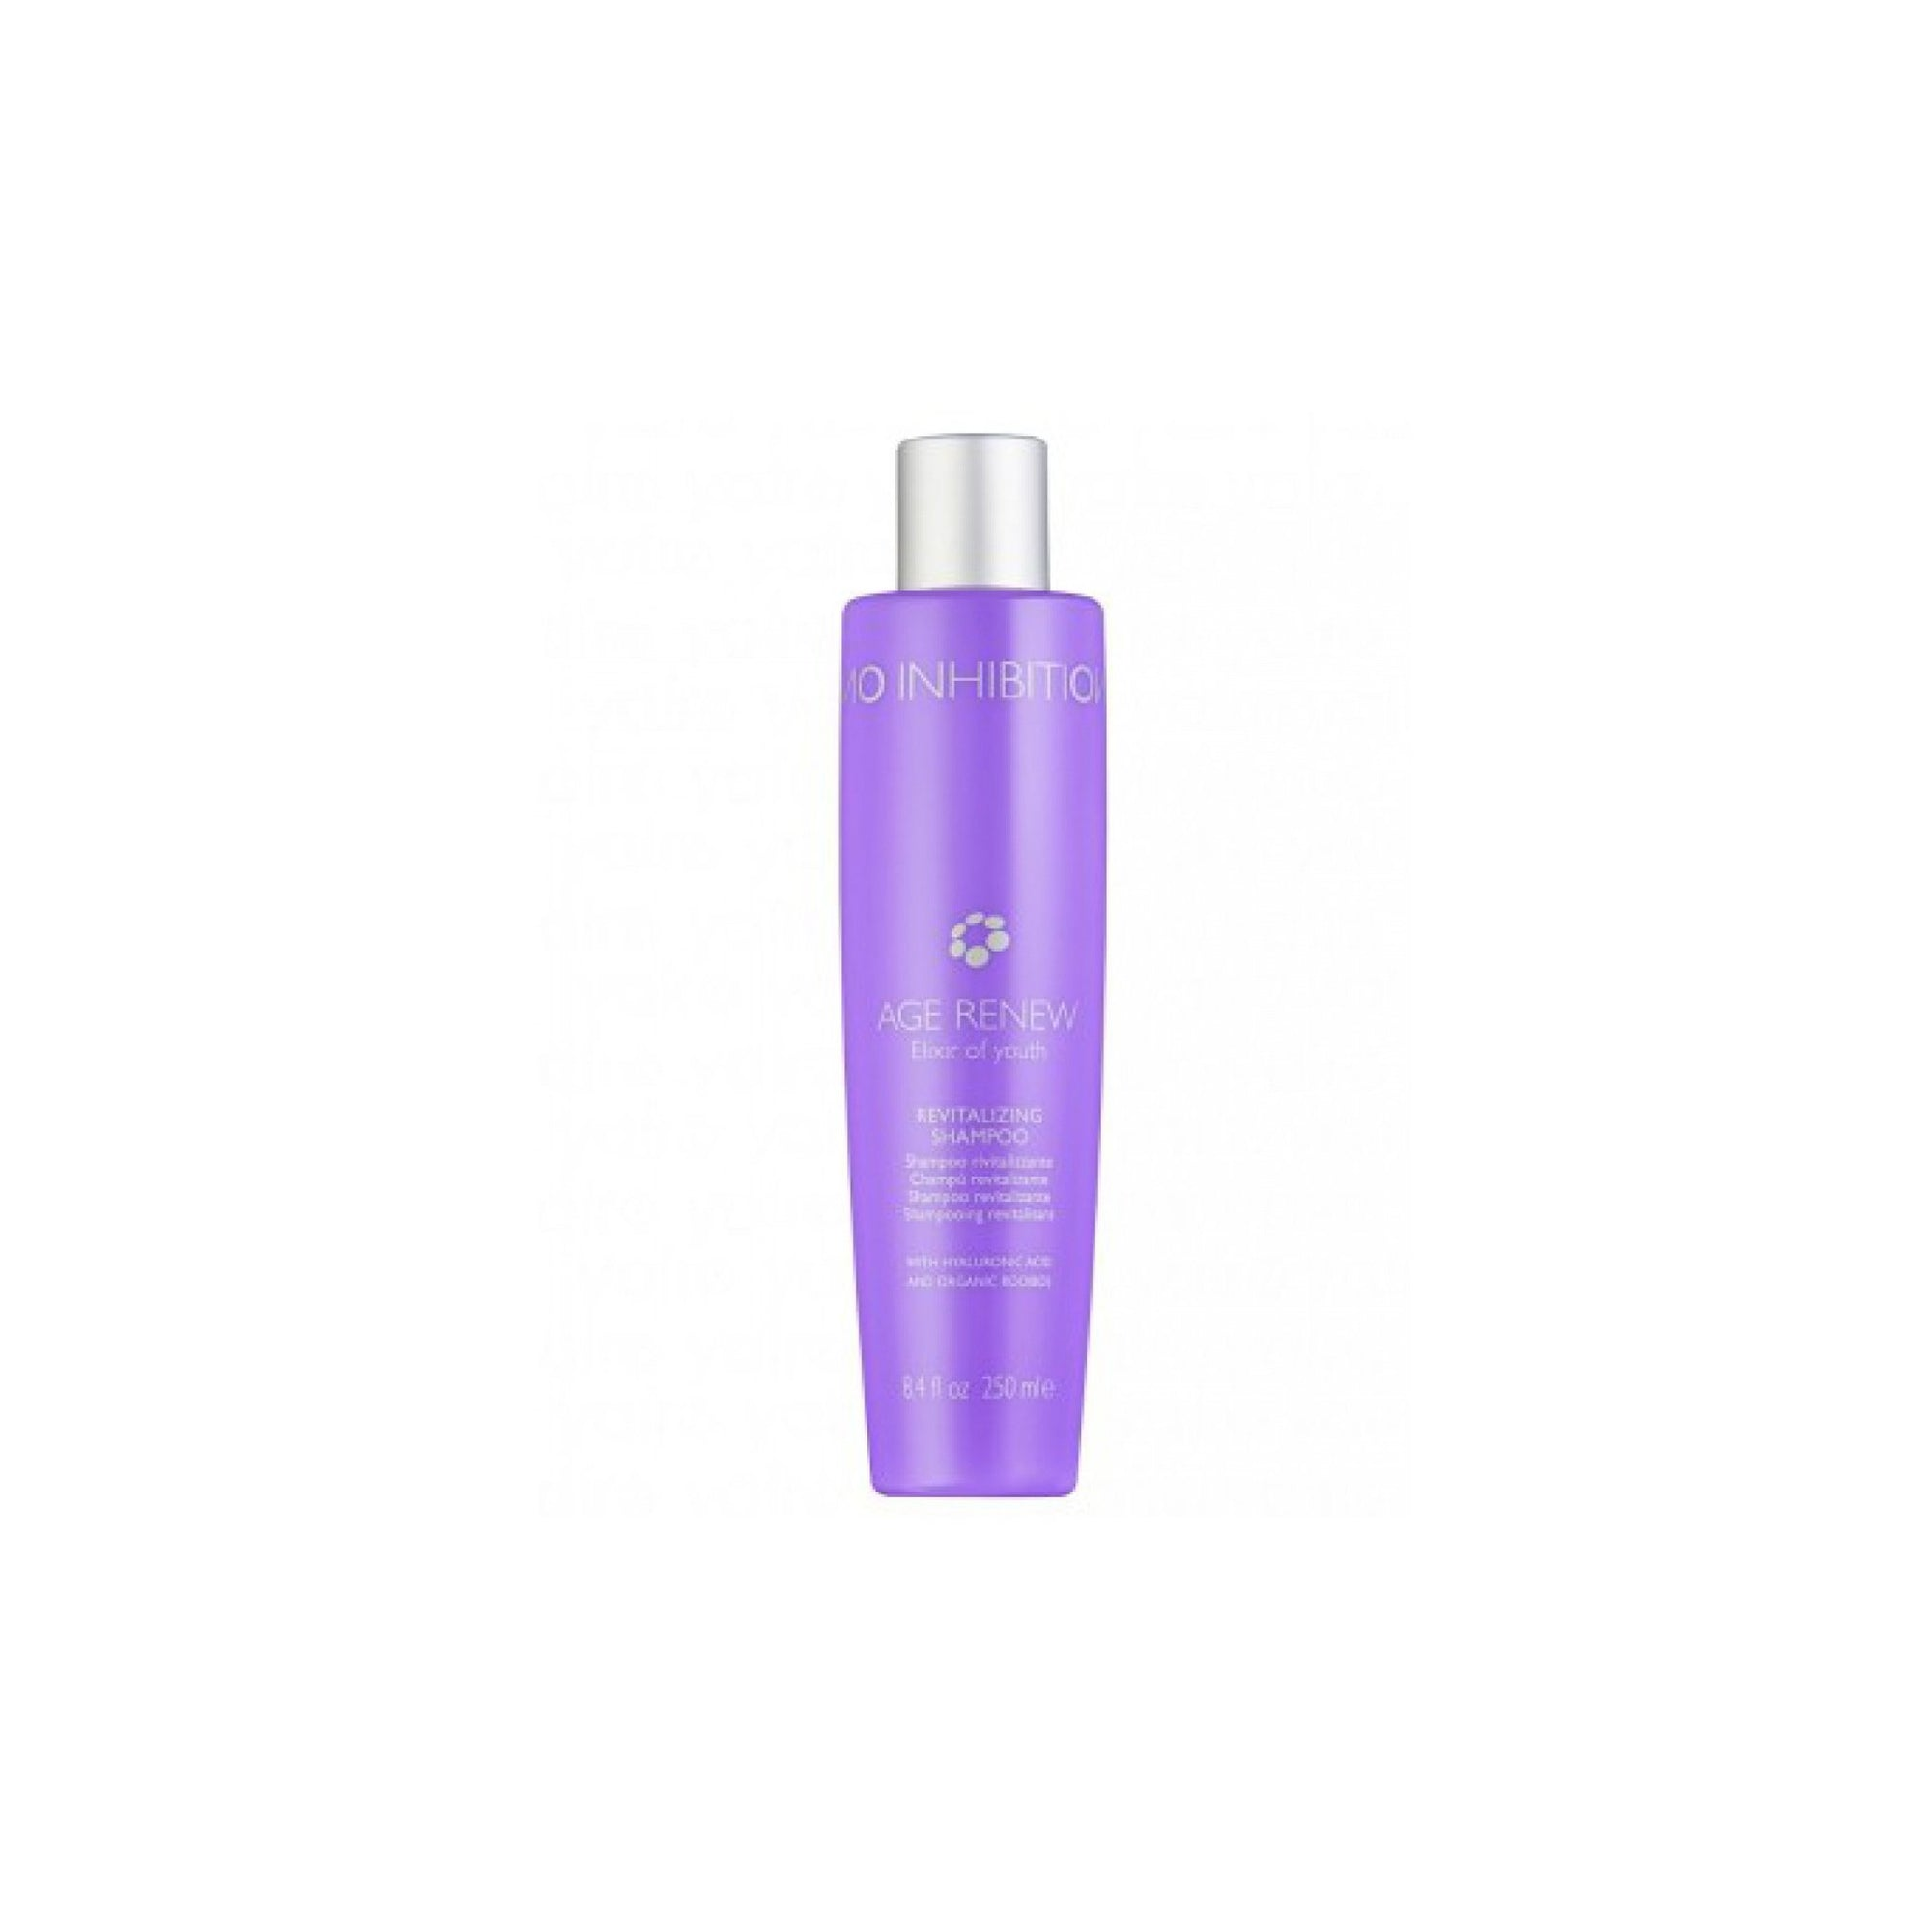 No Inhibition AGE RENEW Revitalising Shampoo